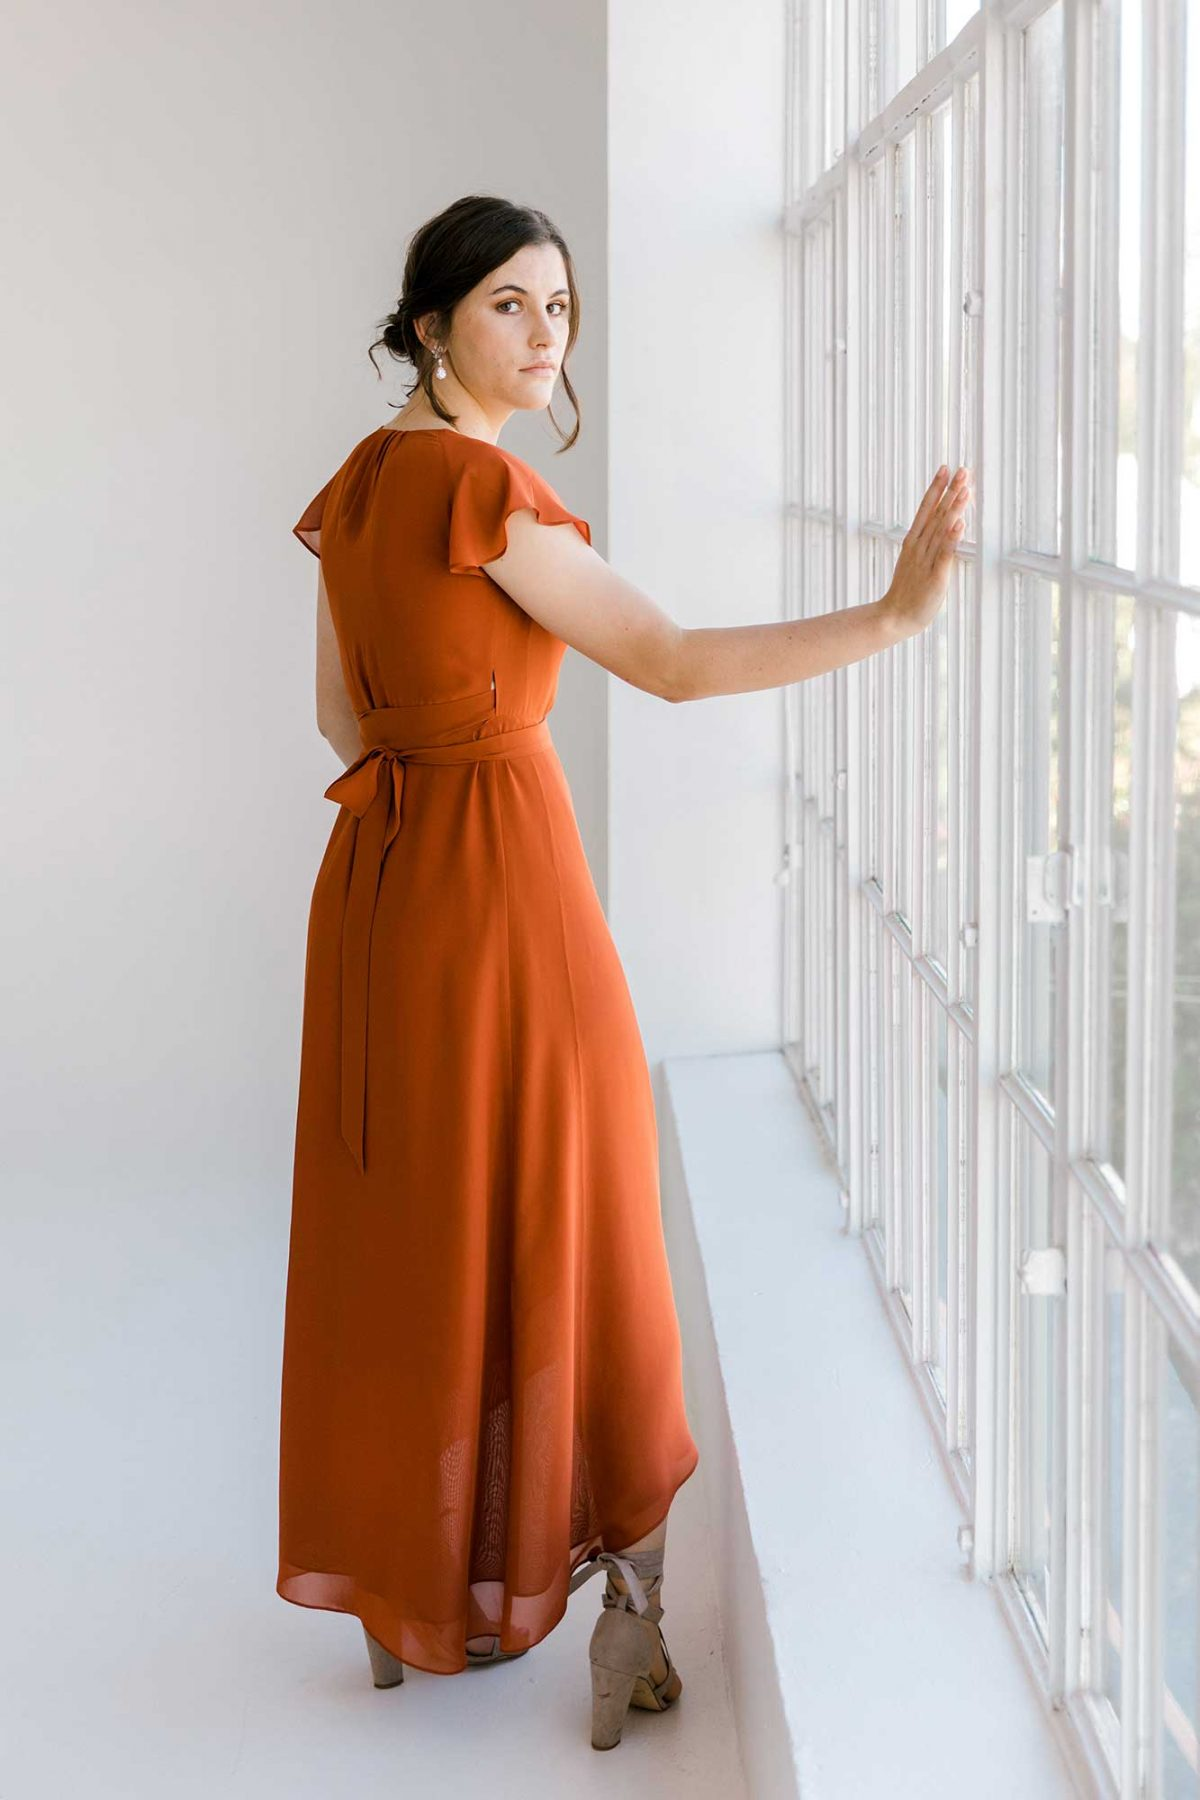 Marianne dress in burnt orange colour side view